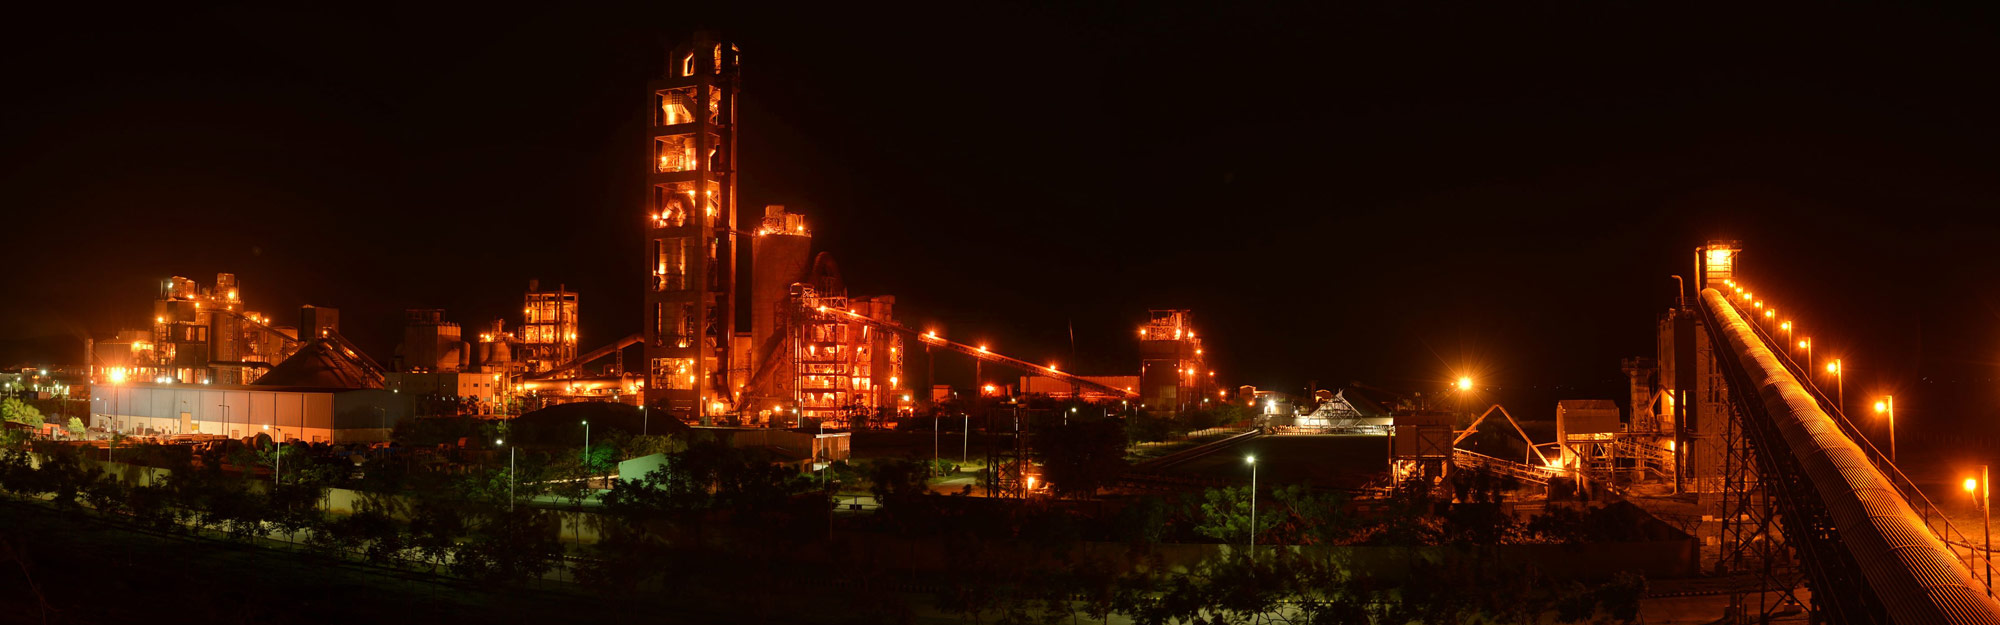 cement manufacturing process in india Penna